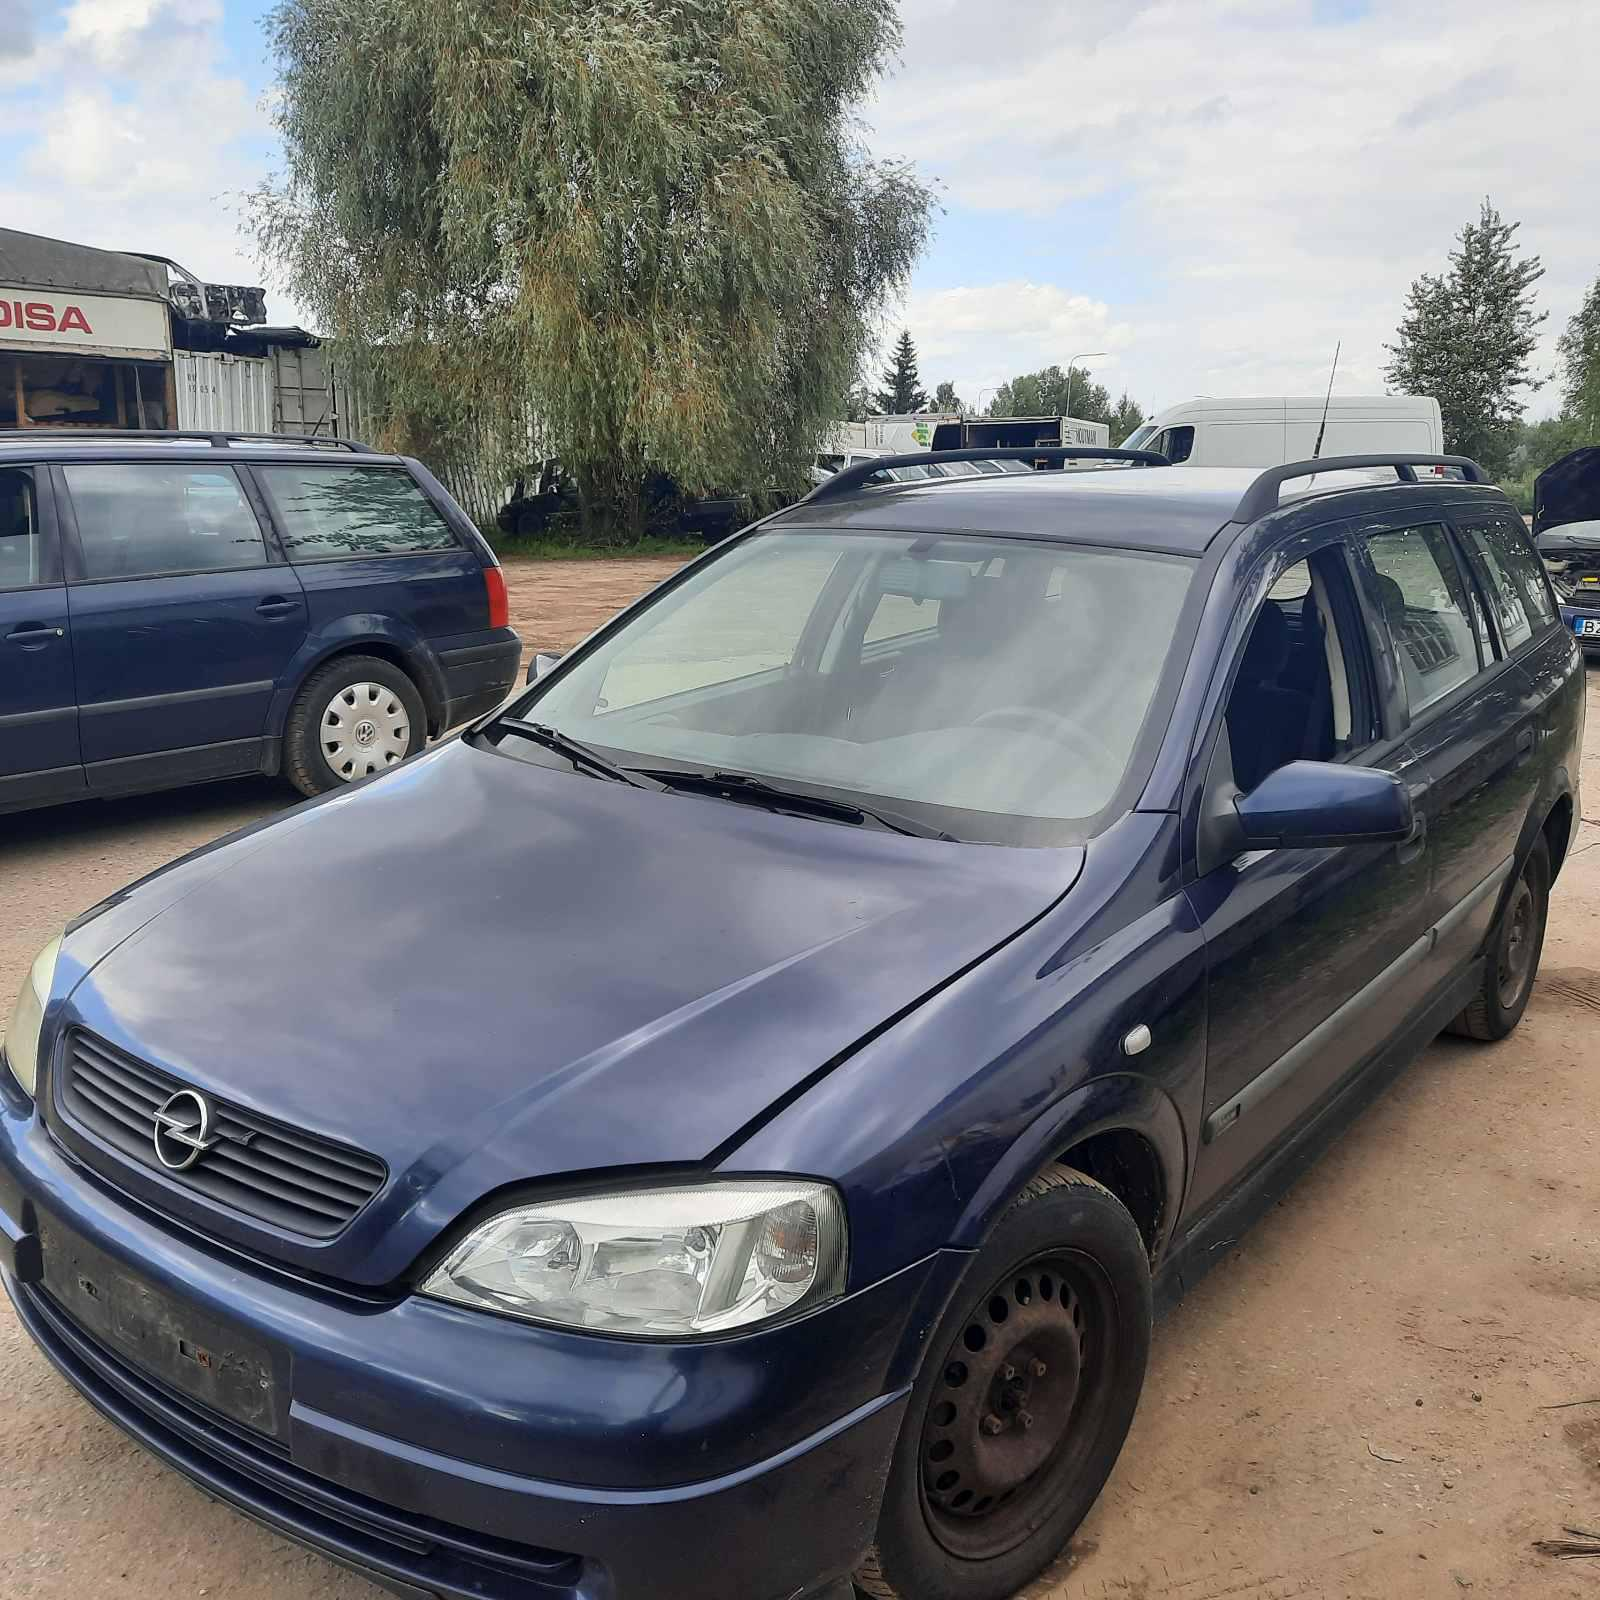 Foto-2 Opel Astra Astra, G 1998.09 - 2004.12 2000 Dyzelis 1.7